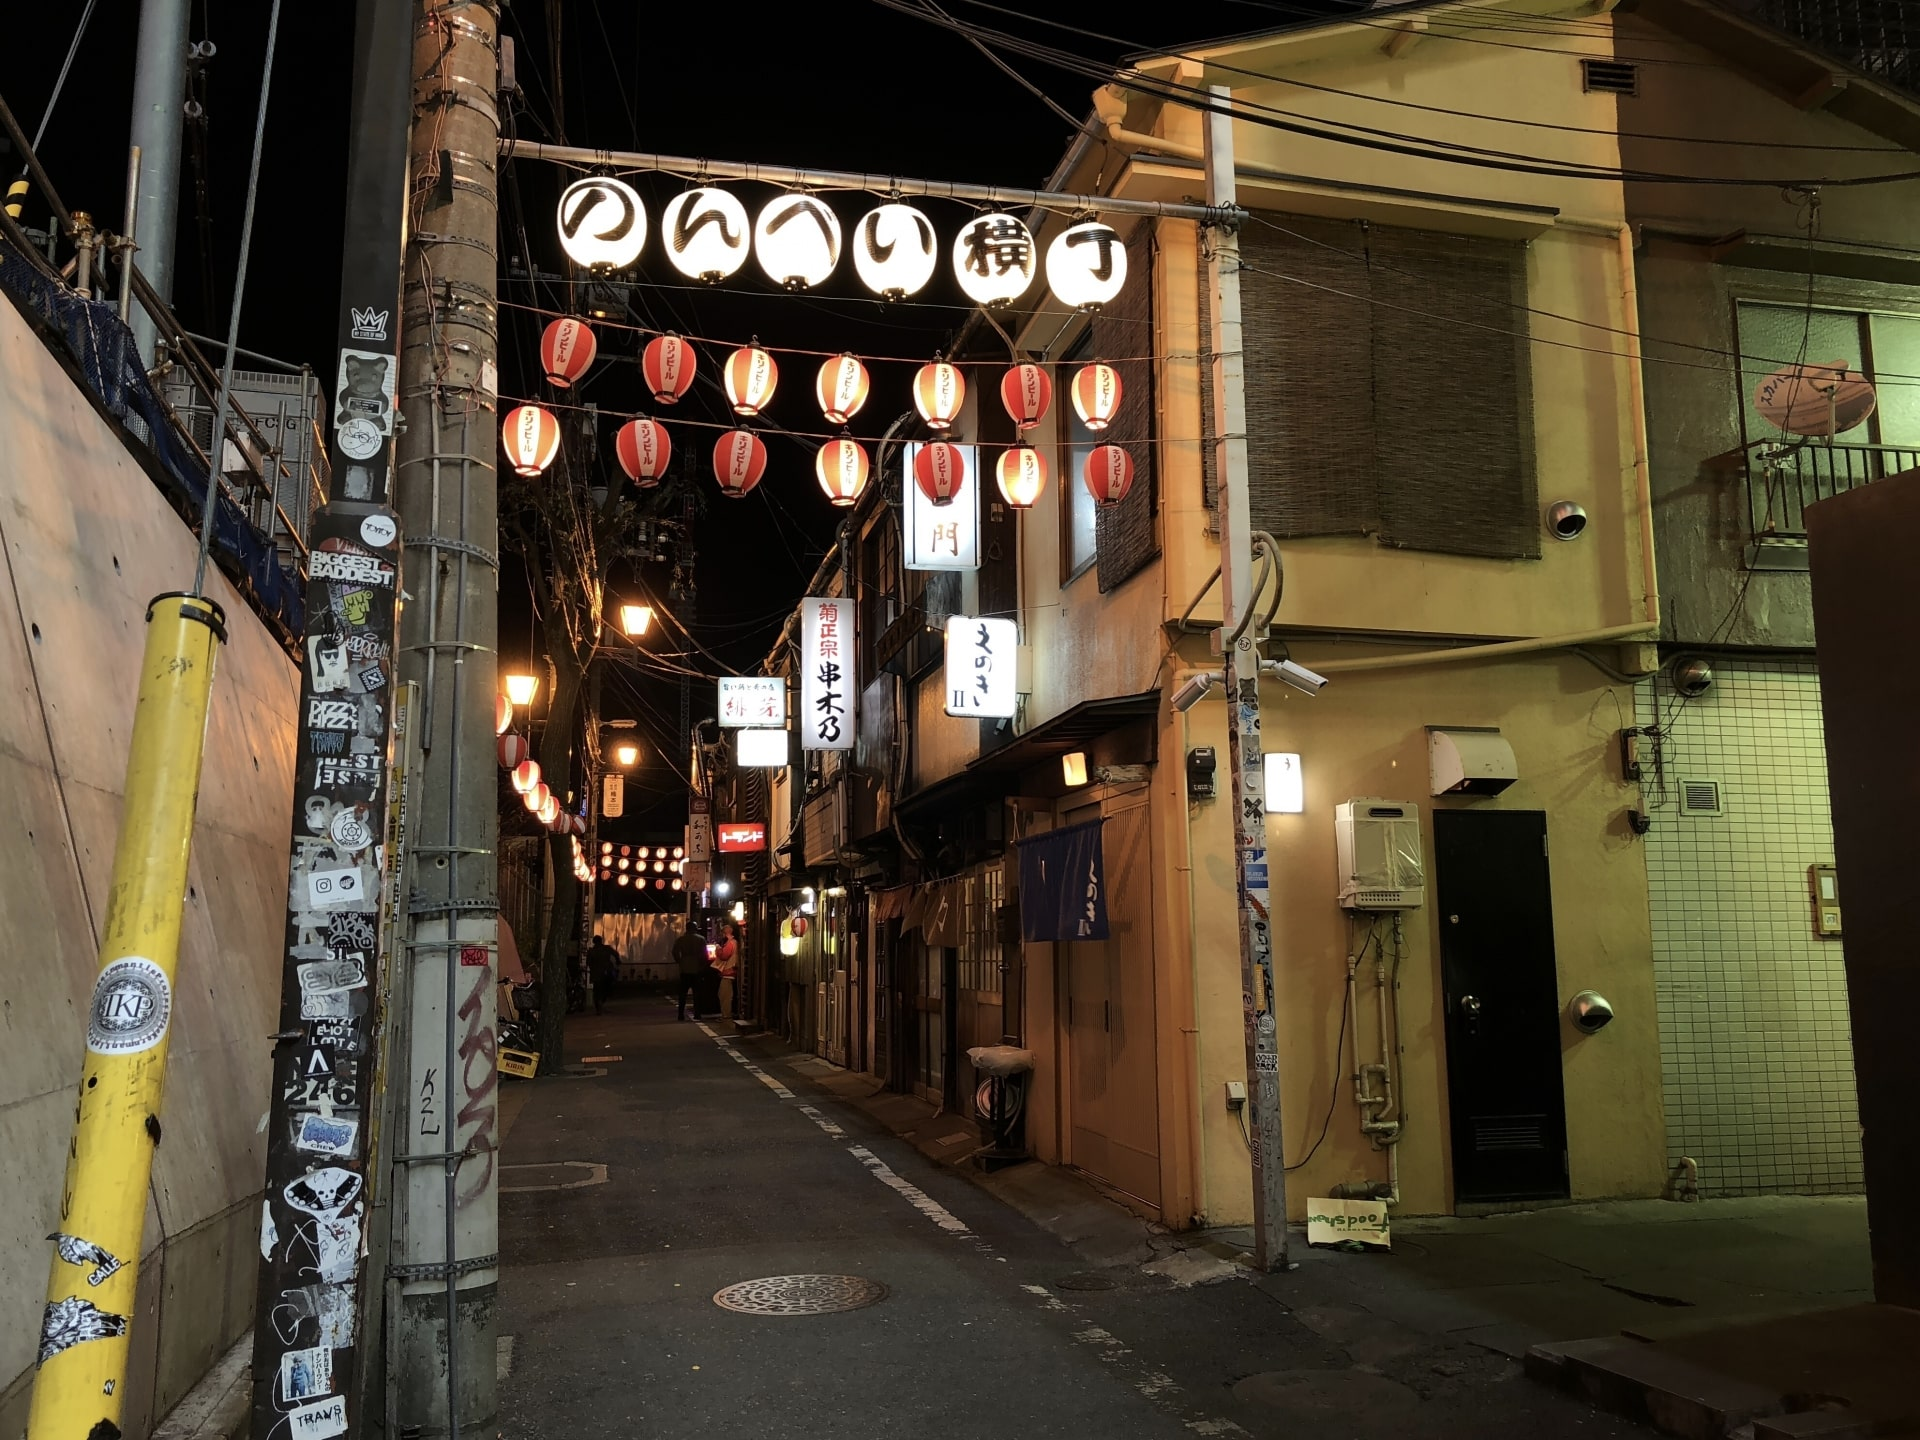 Nonbei Yokocho Alley at night